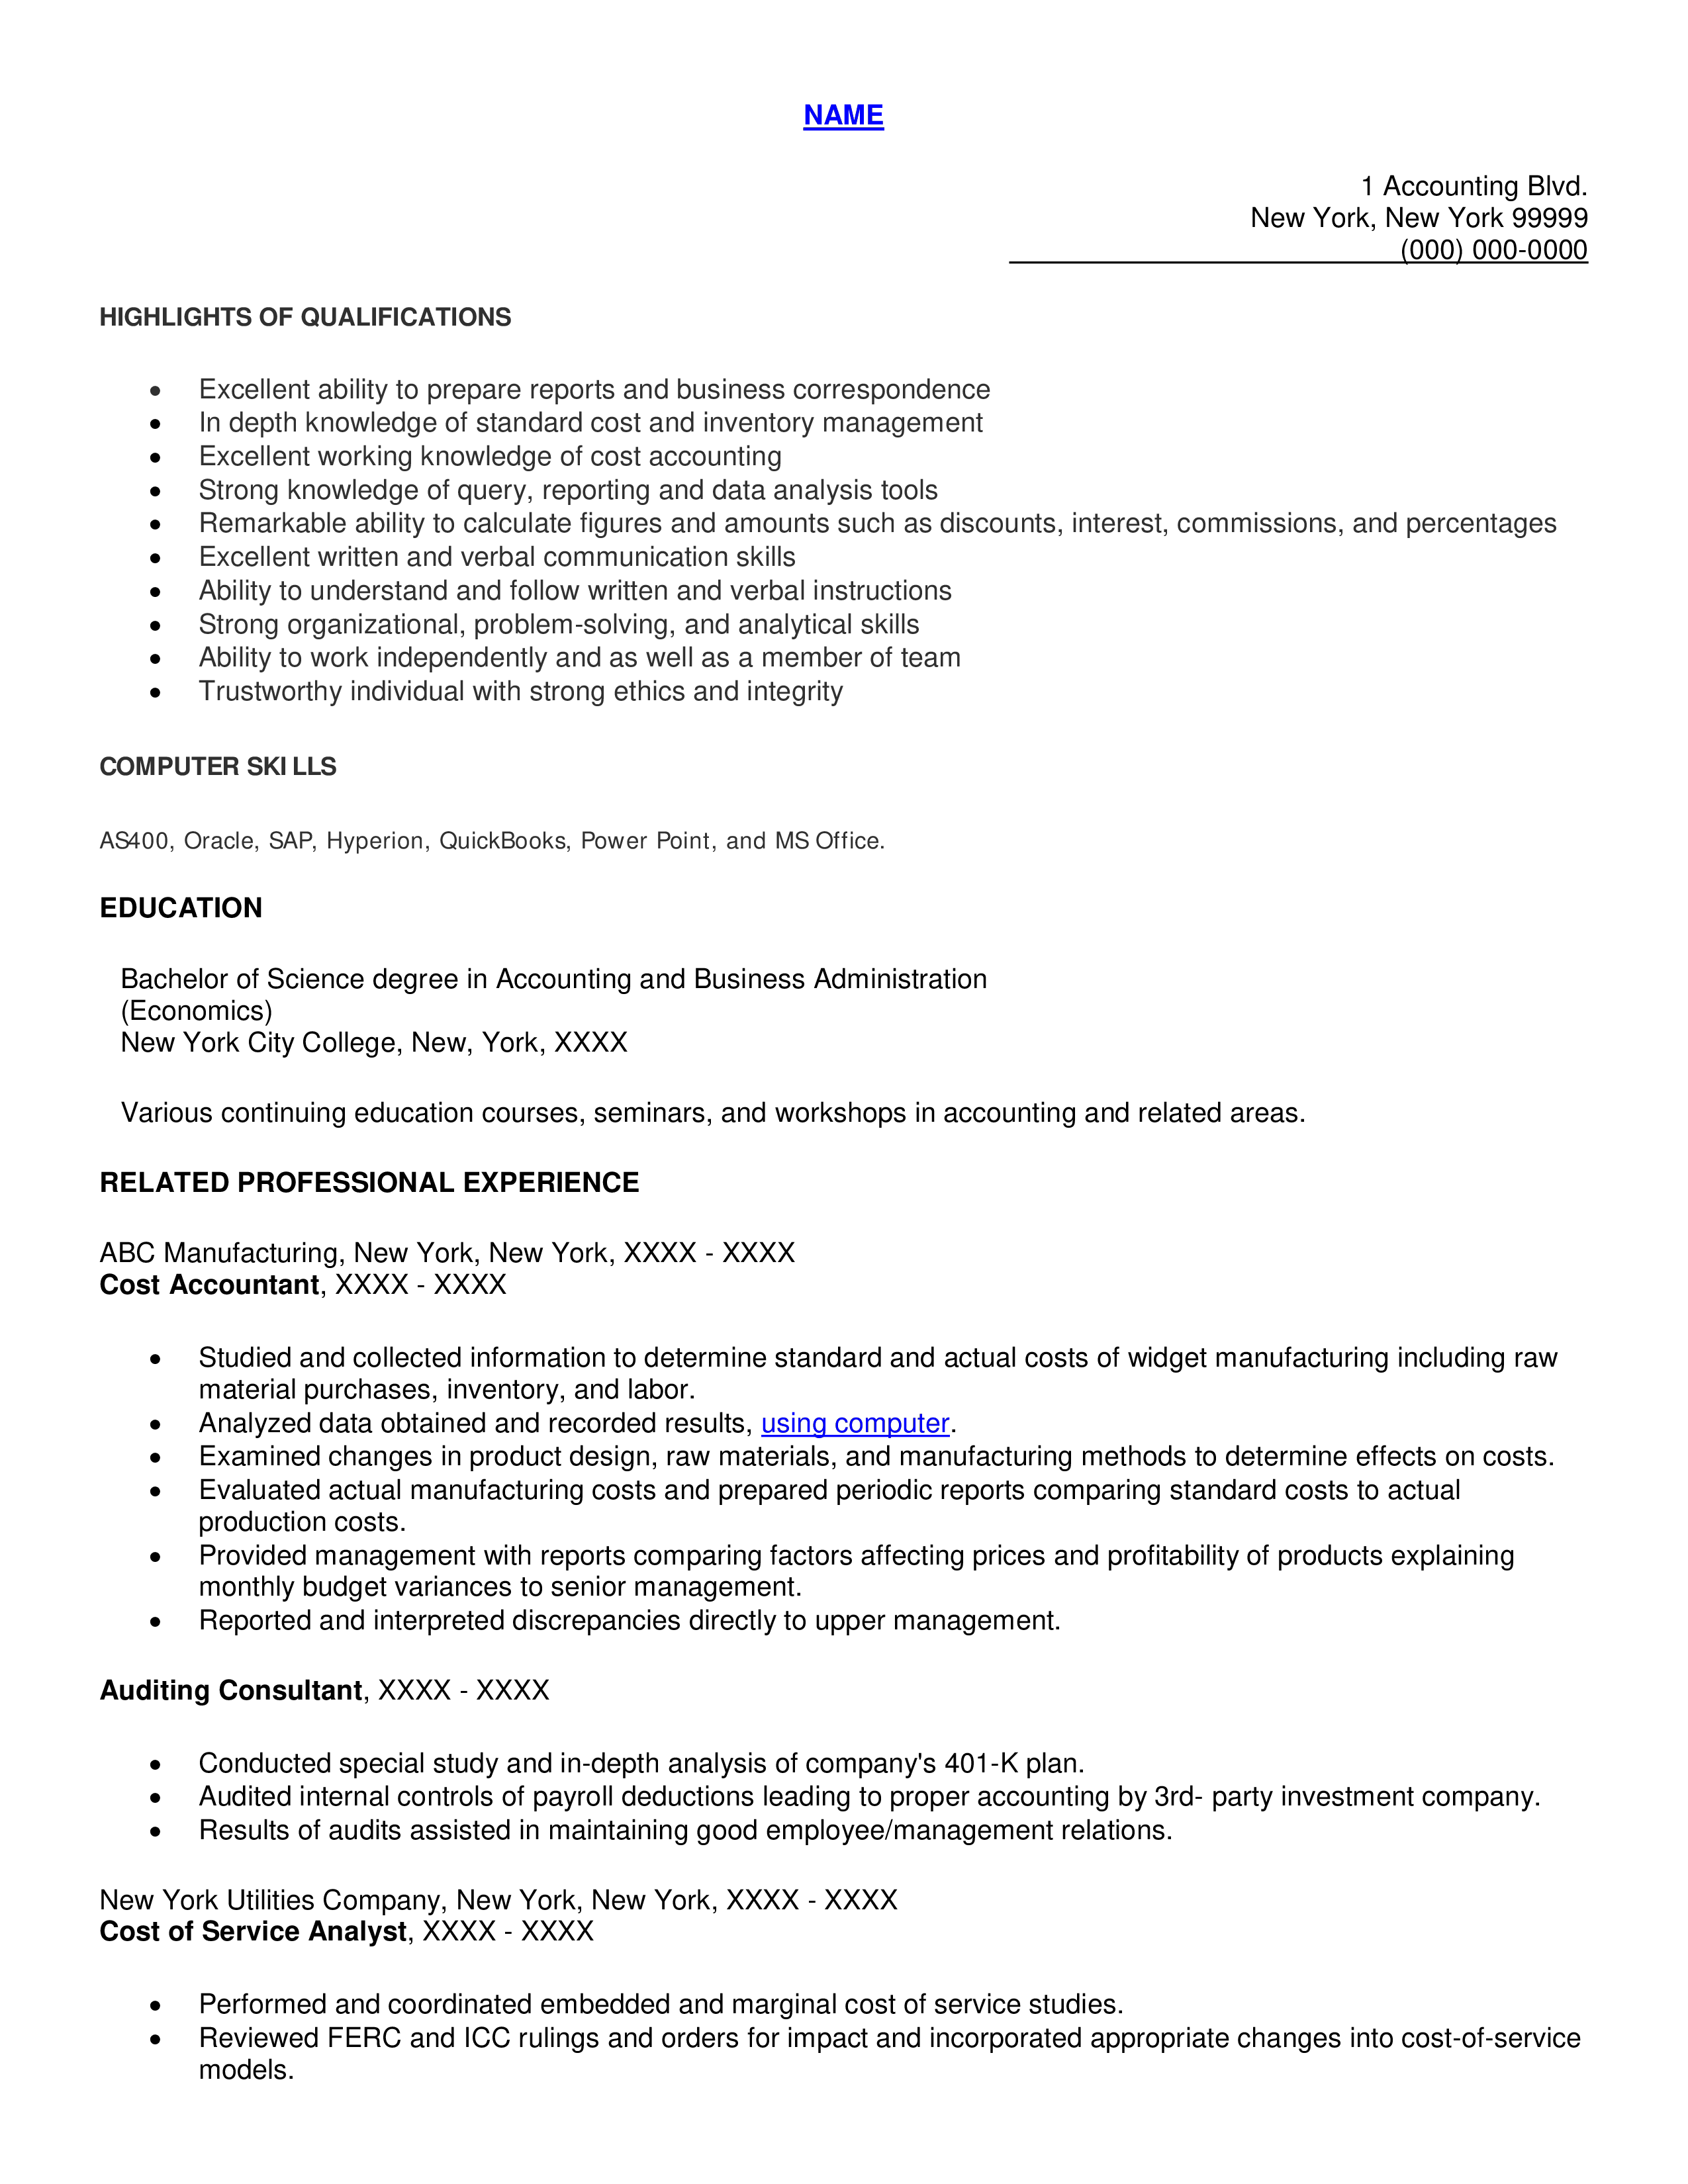 Sample Professional Resume For Cost Accountant How To Draft A Professional Resume For Cost Accountant Download Templates Business Correspondence Accounting